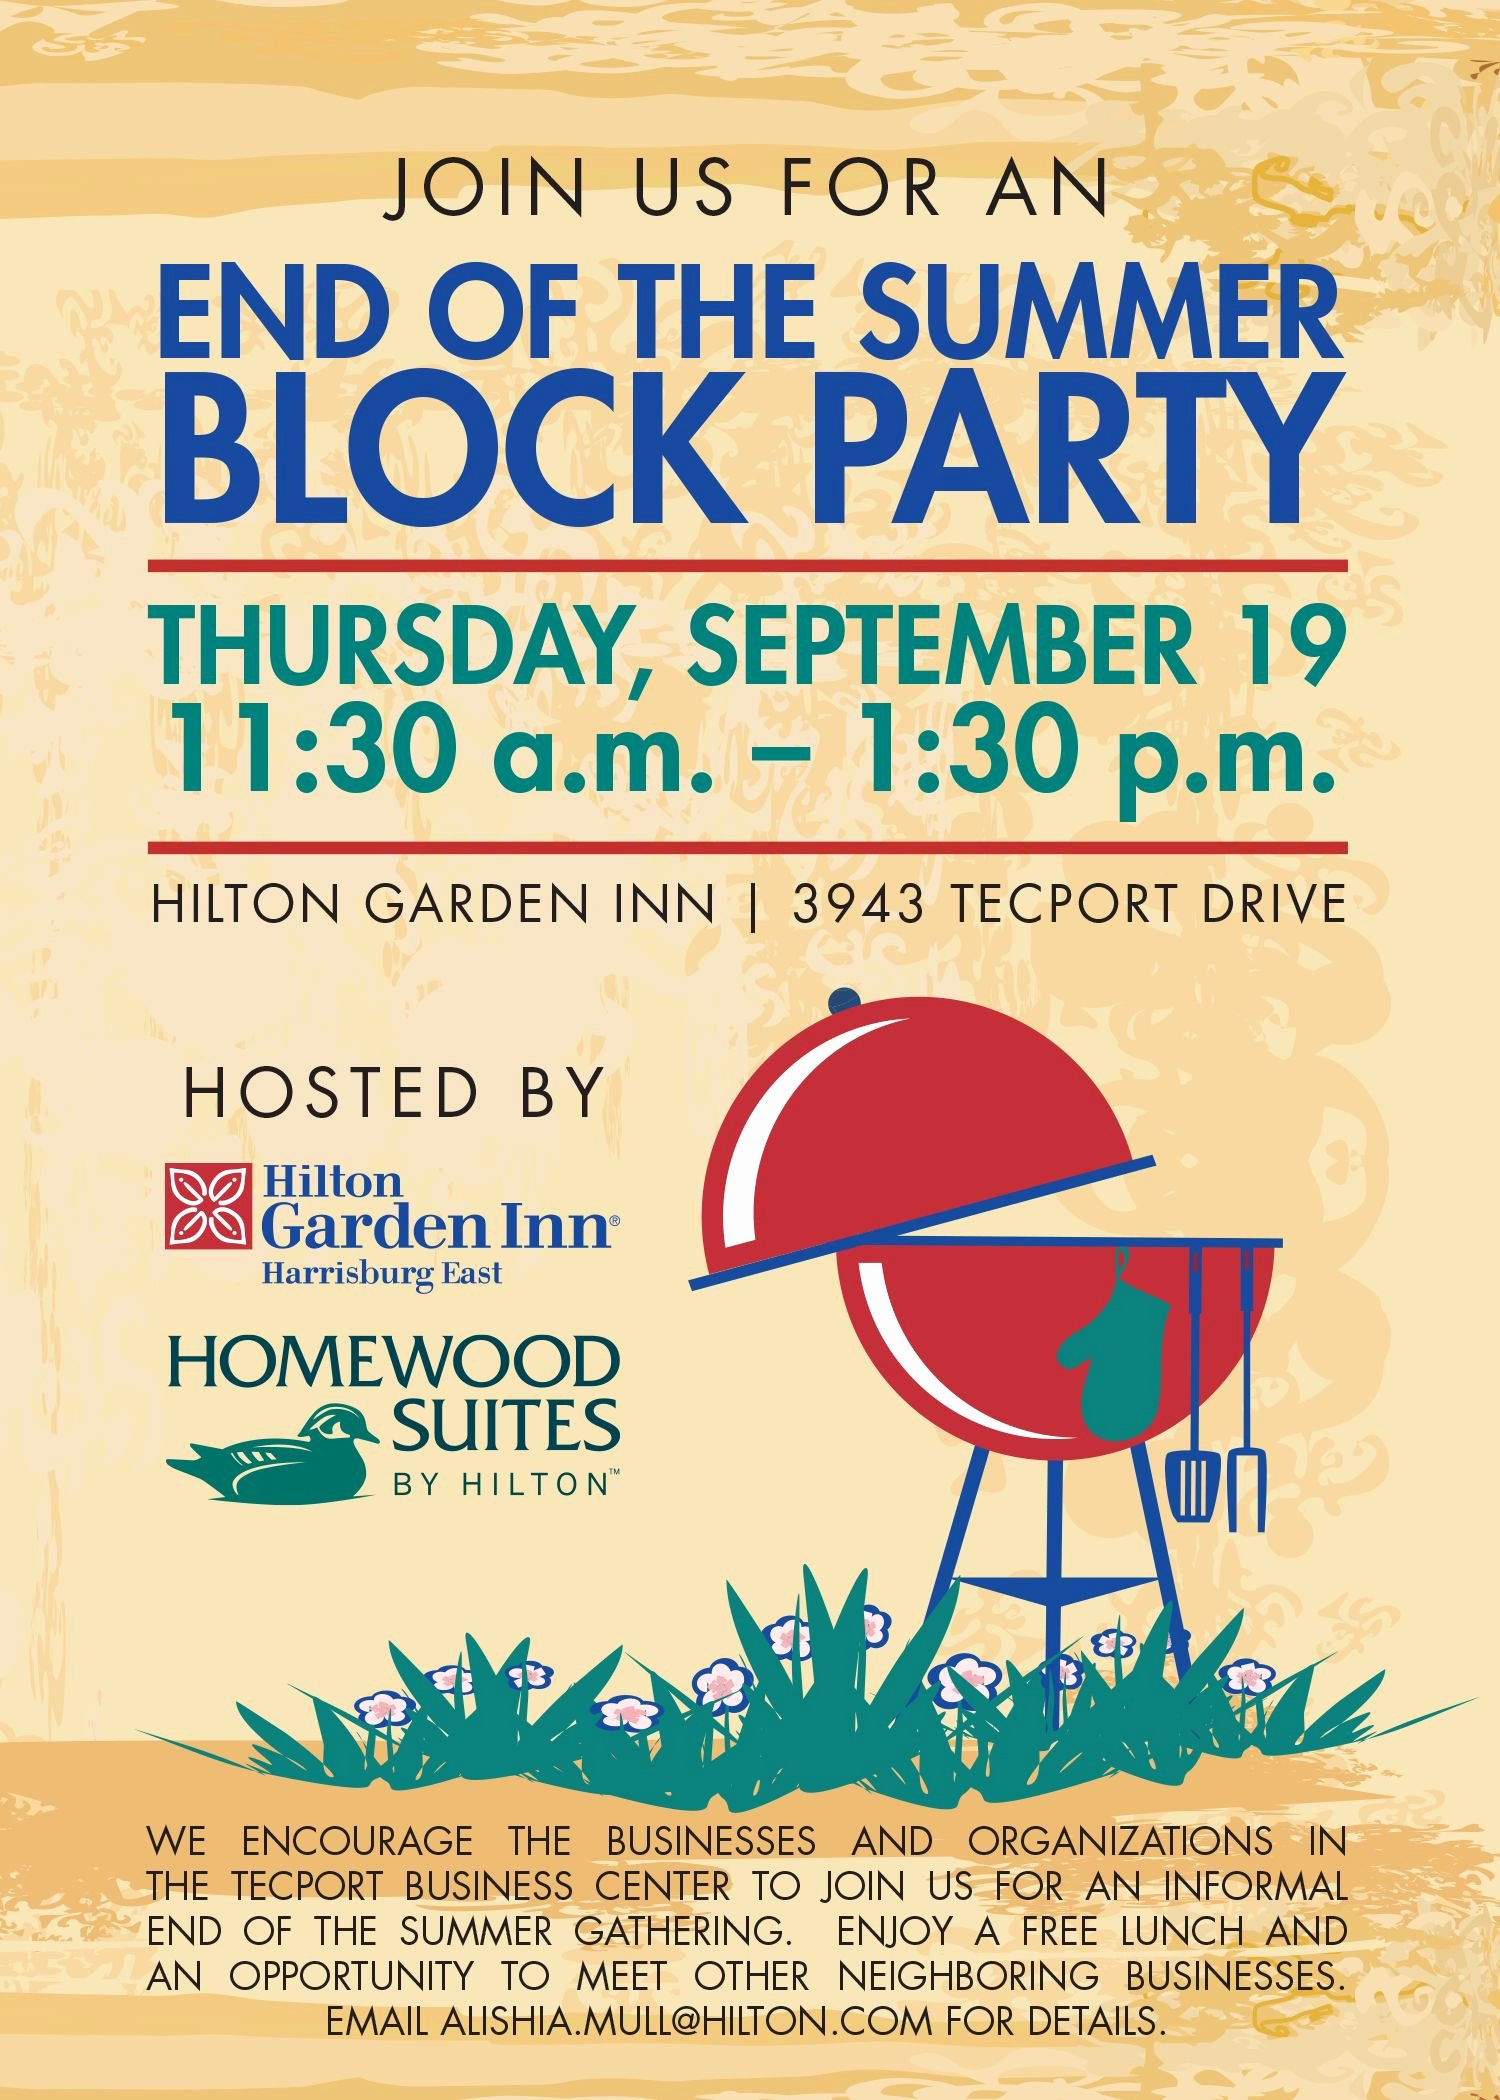 Block Party Invitation for Homewood Suites and Hilton